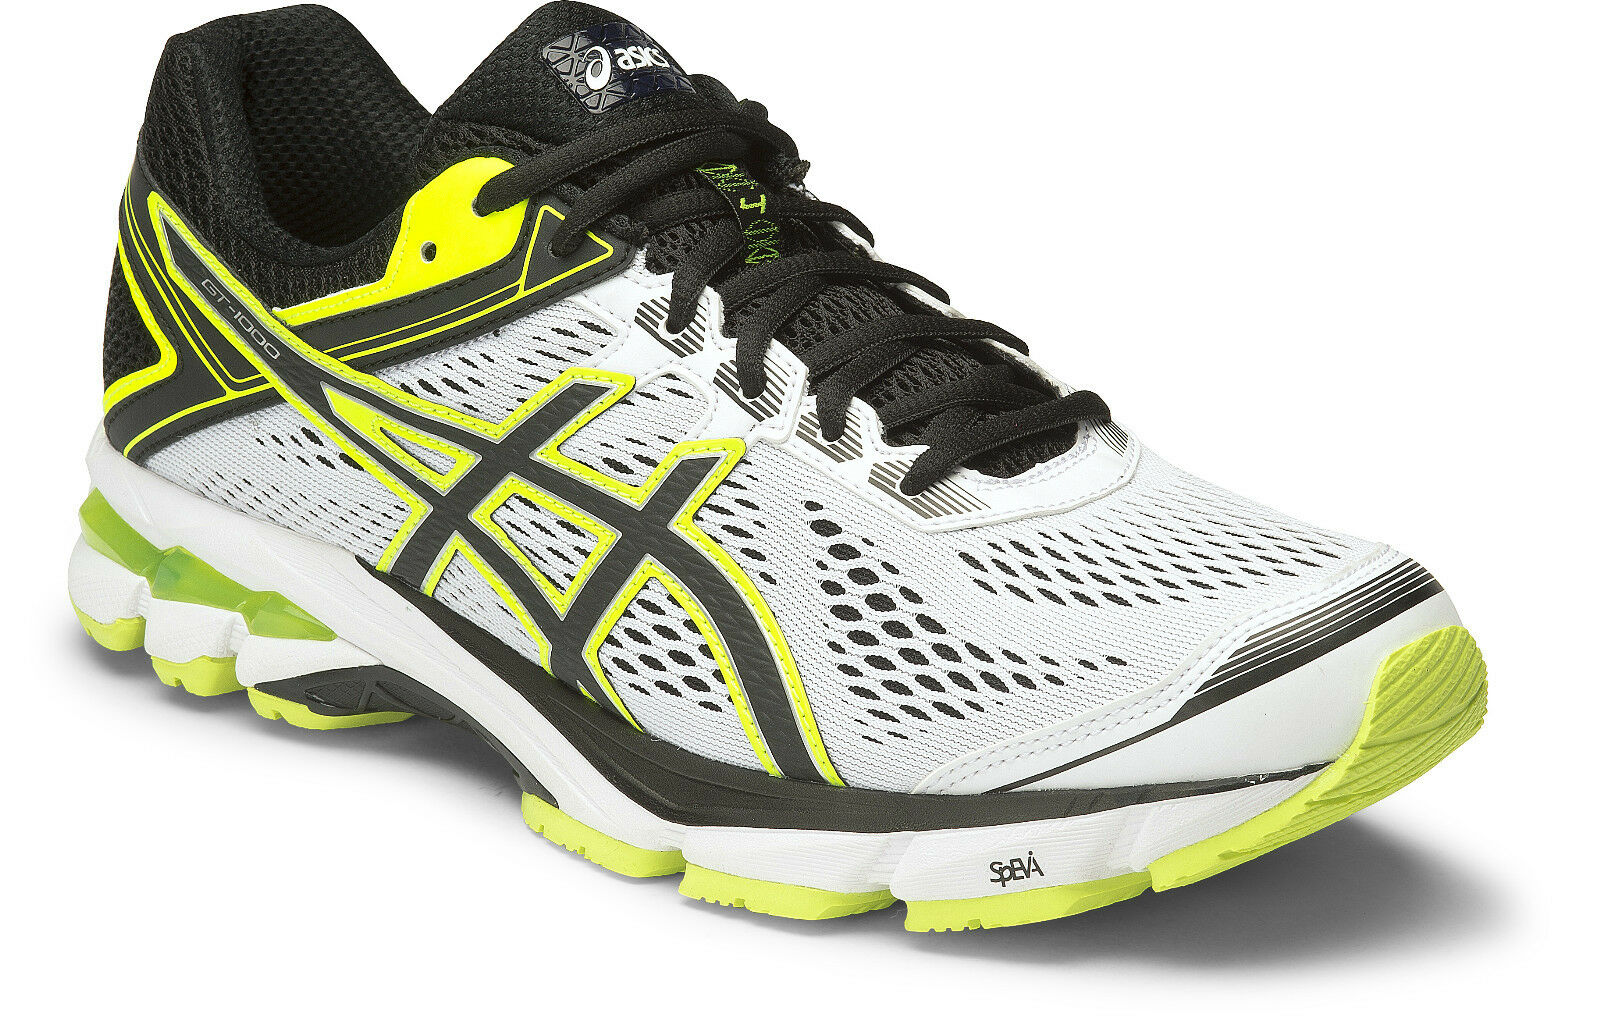 Asics GT 1000 4 Mens Runner (D) (0199) + Free Delivery Australia Wide